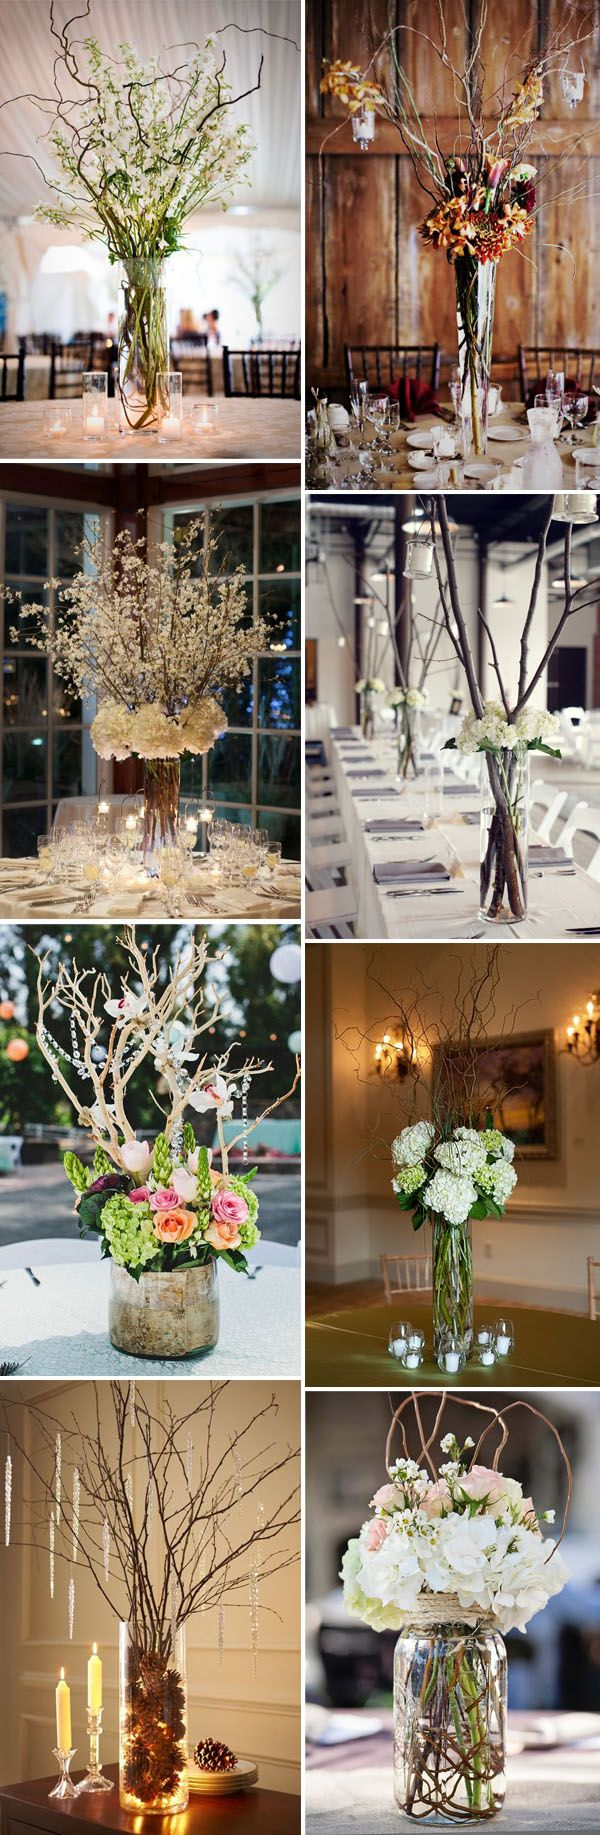 28 Creative Budget Friendly DIY Wedding Decoration Ideas